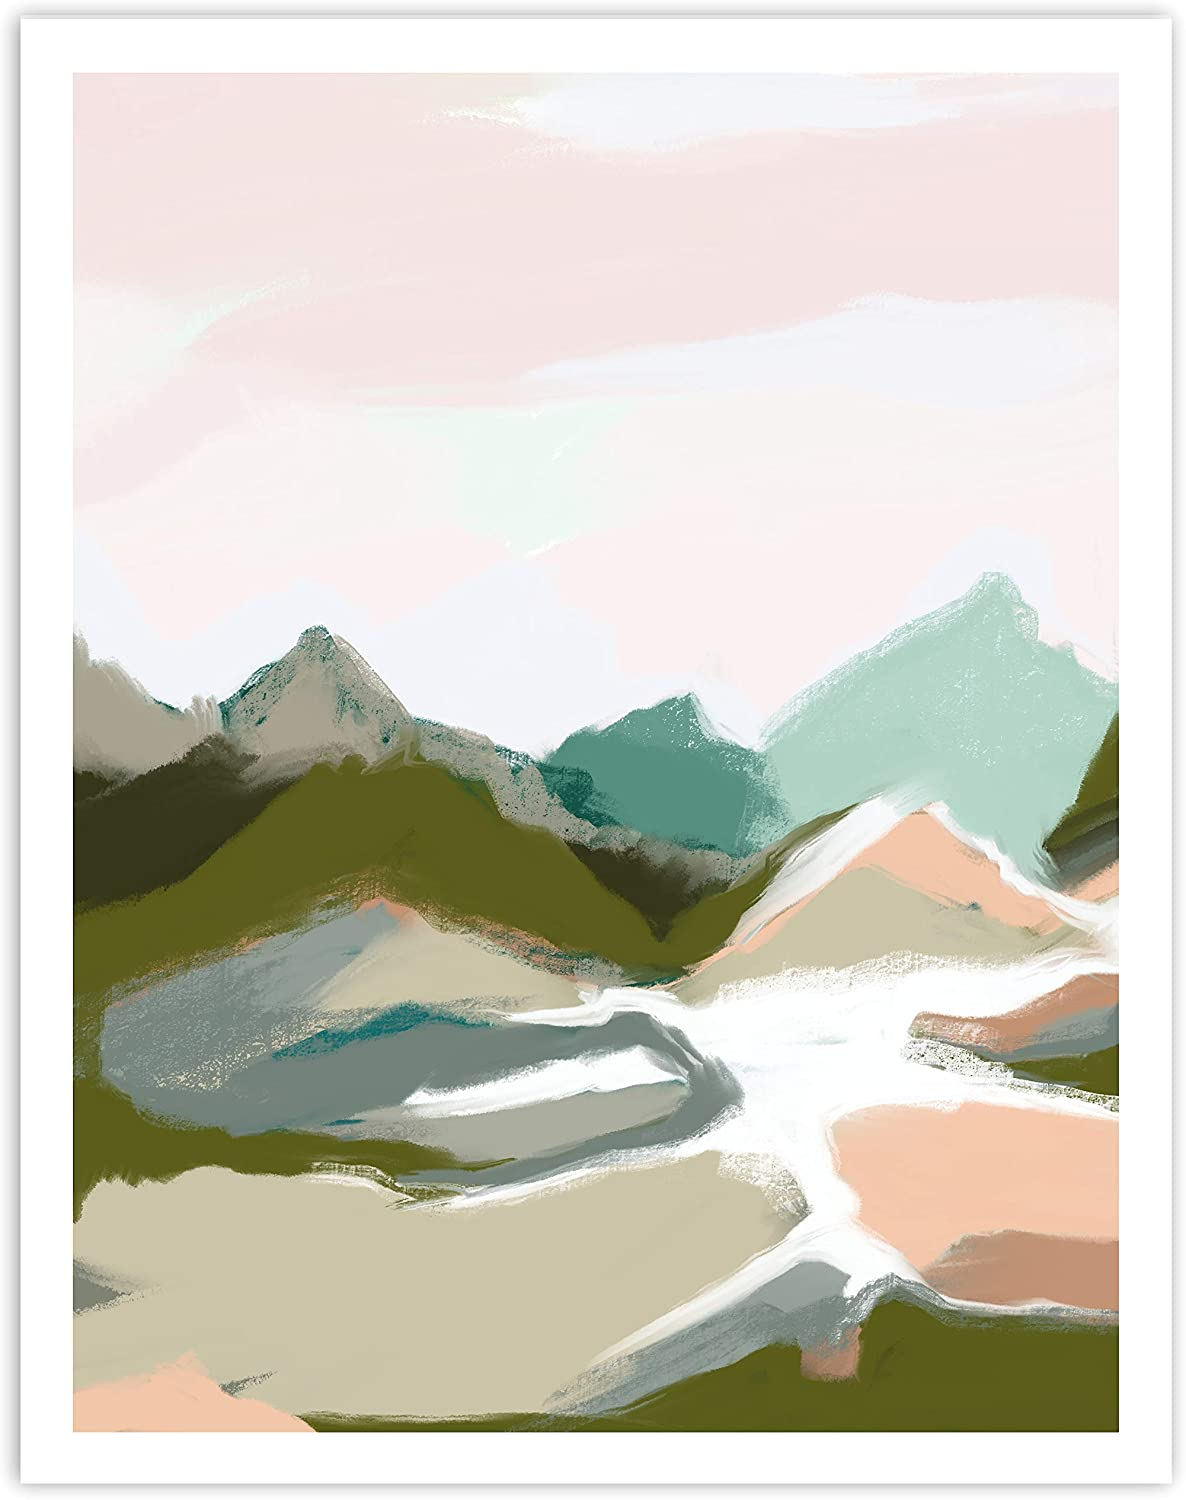 Printsmo Modern Neutral Earth Tones Landscape Art Print, Minimalist Art Prints for Home Decor, Abstract Mountains Boho Style Wall Art Poster, Bohemian Wall Decor, 11x14 Inches, Unframed